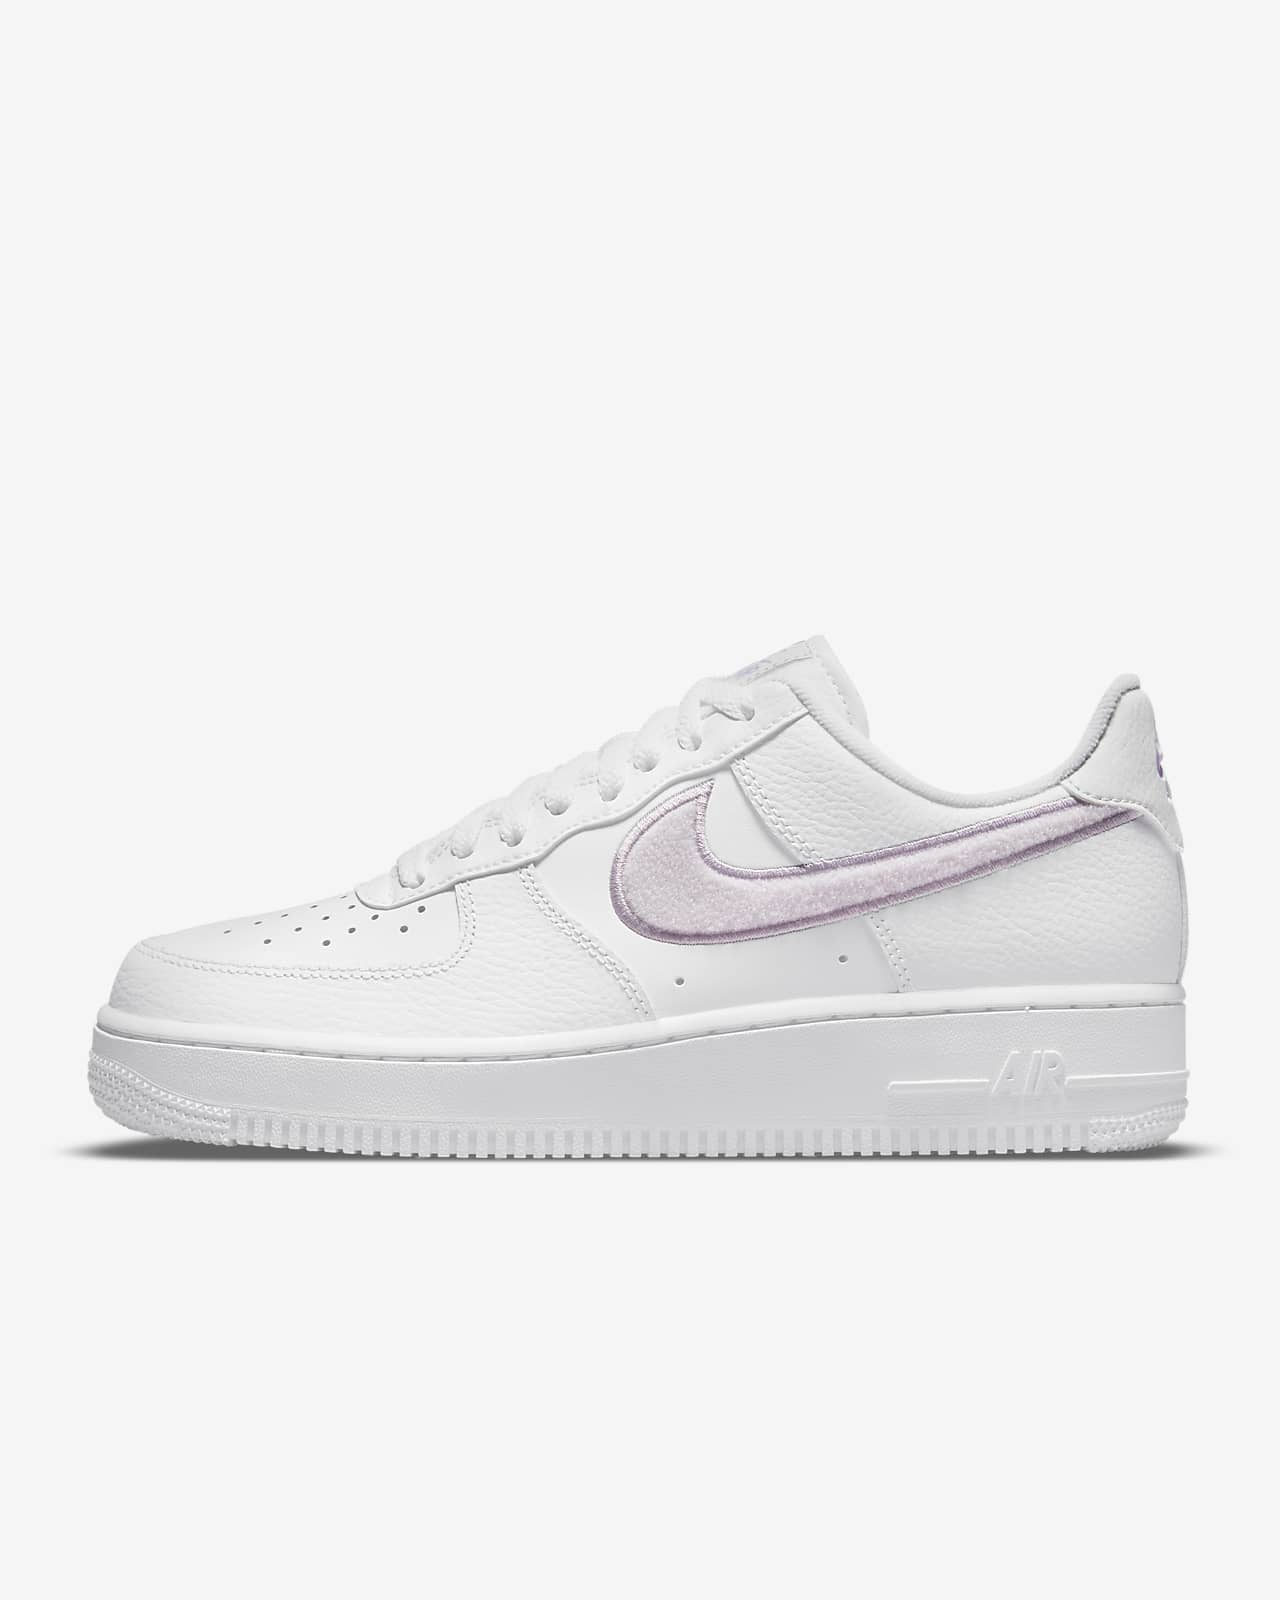 nike air force 1 07 donna bianche e rosse